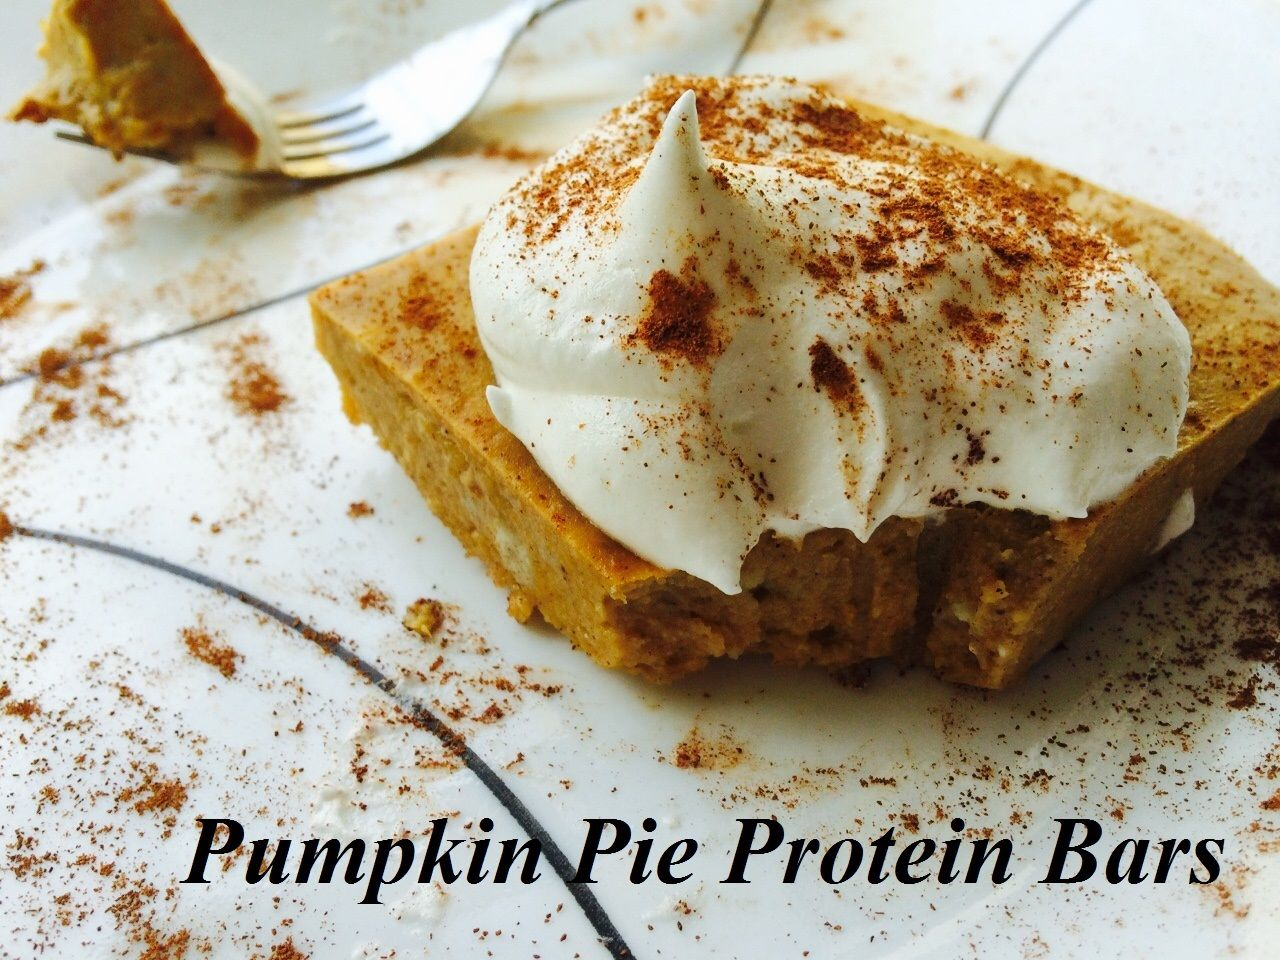 Pumpkin Pie Protein Bars- 1 Bar is only 101 Calories with 19g Protein and Under 3g Sugar!! Yum!  Click the Picture and Check out the Recipe :)